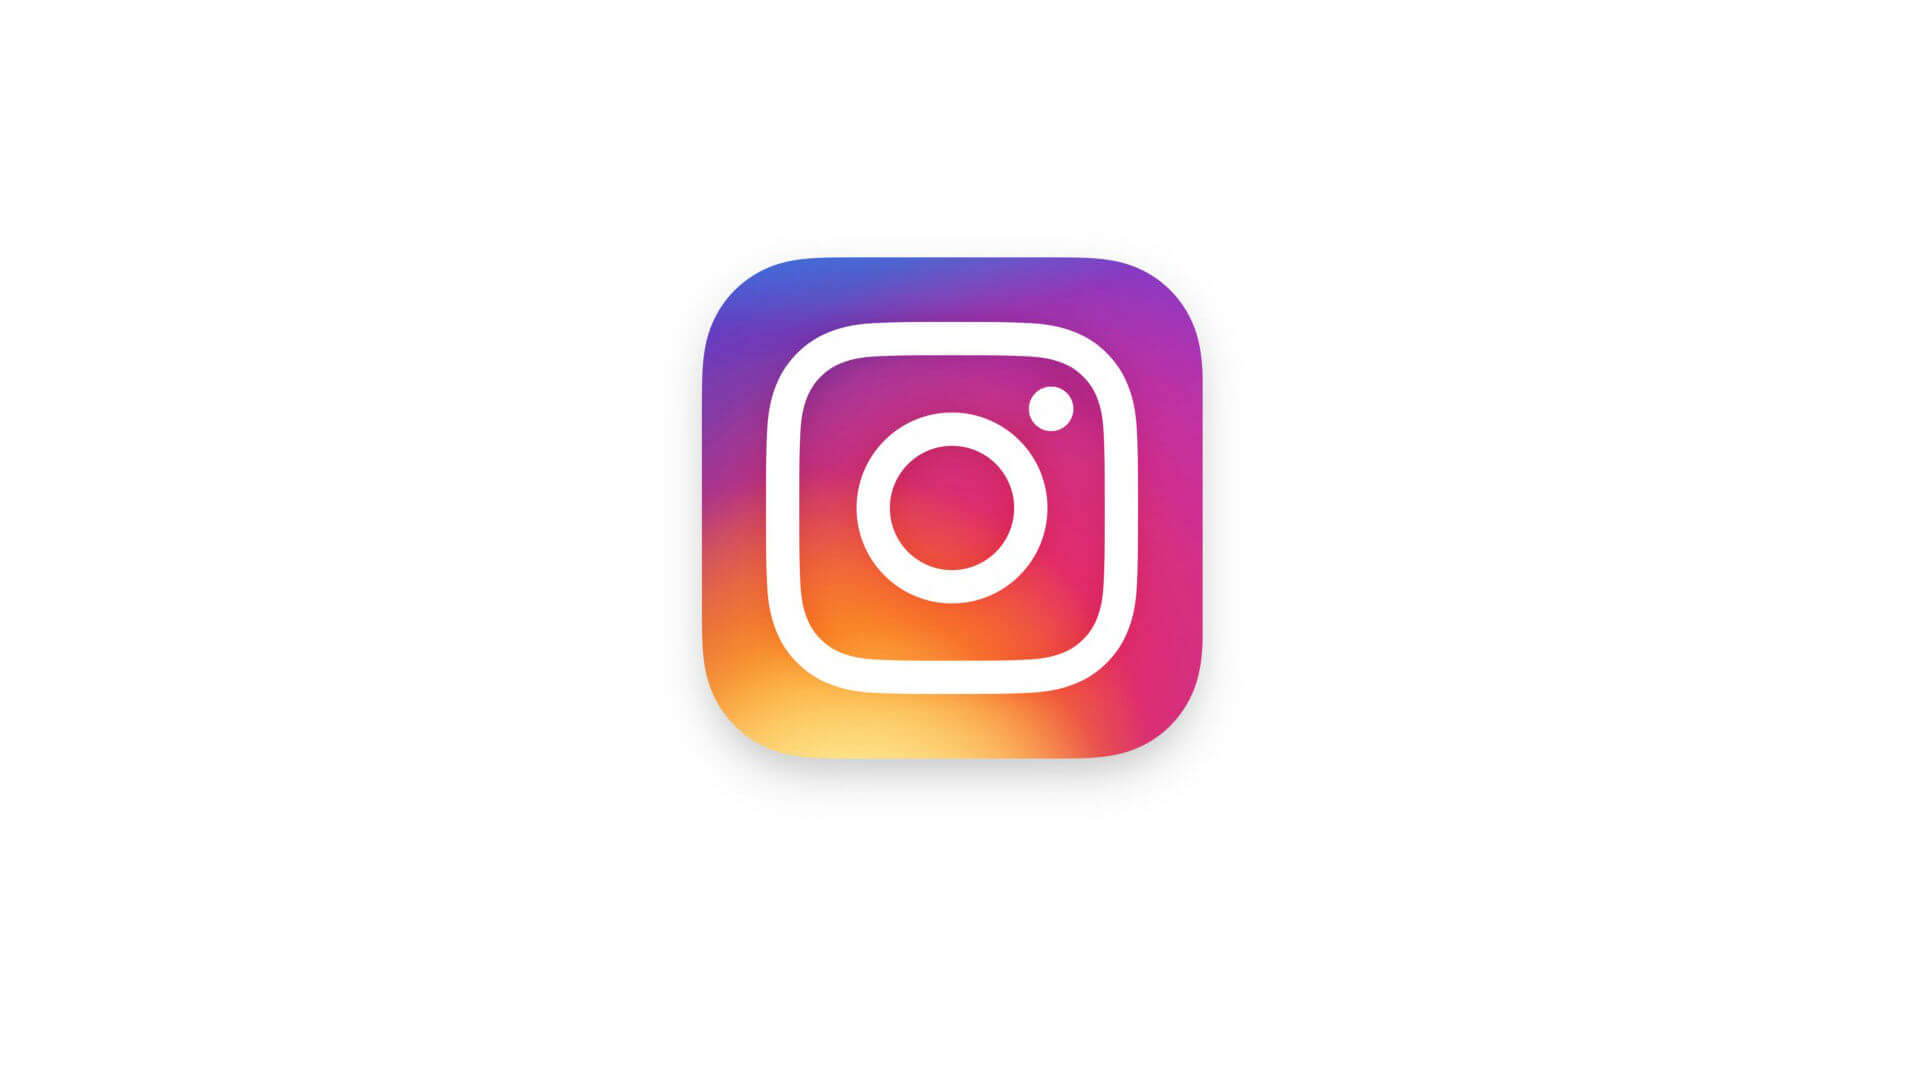 Instagram unveils new look for its logo, mobile apps.